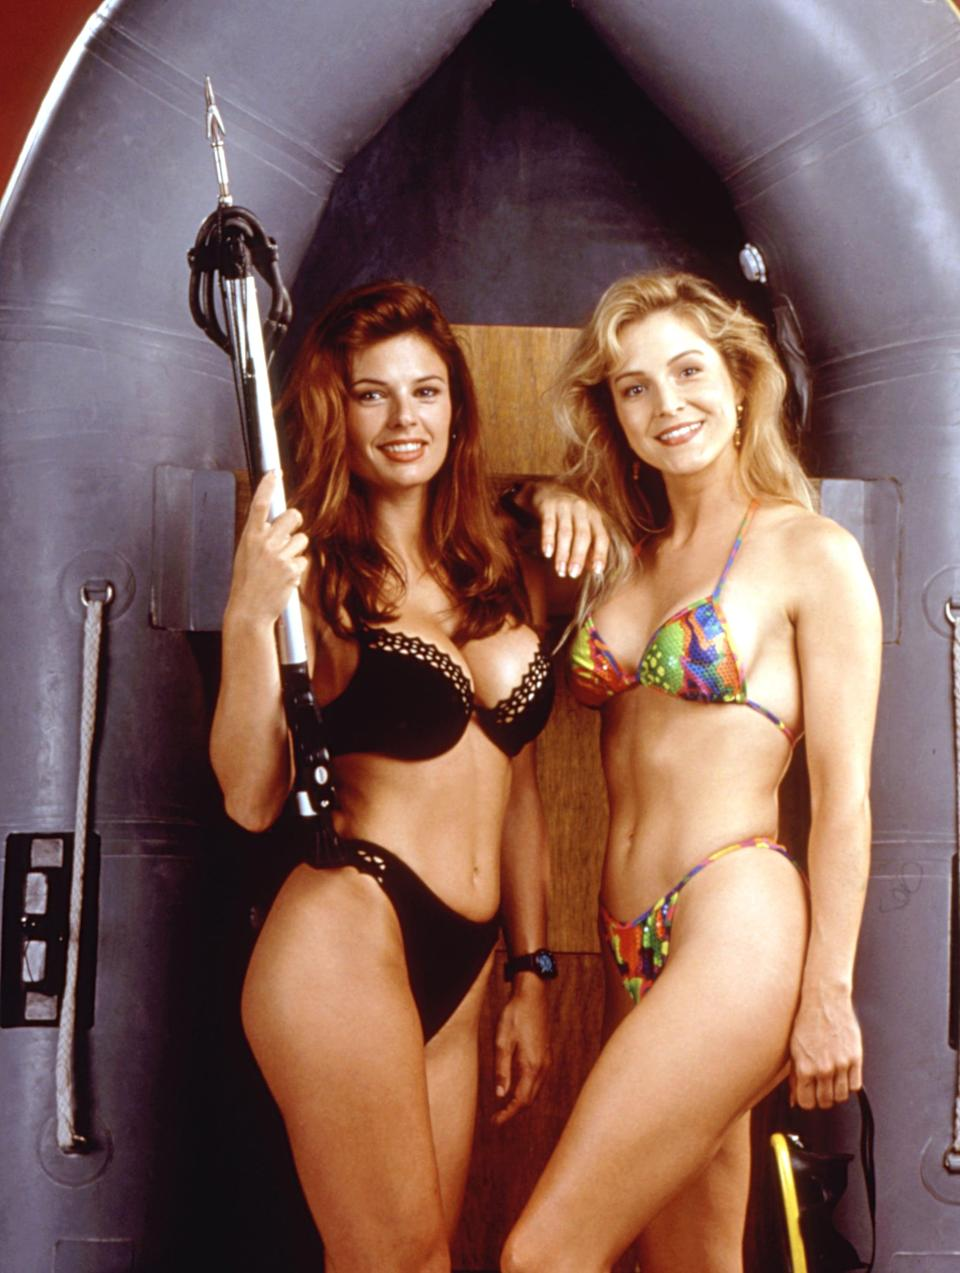 <p>These two are absolute bombshells.</p>